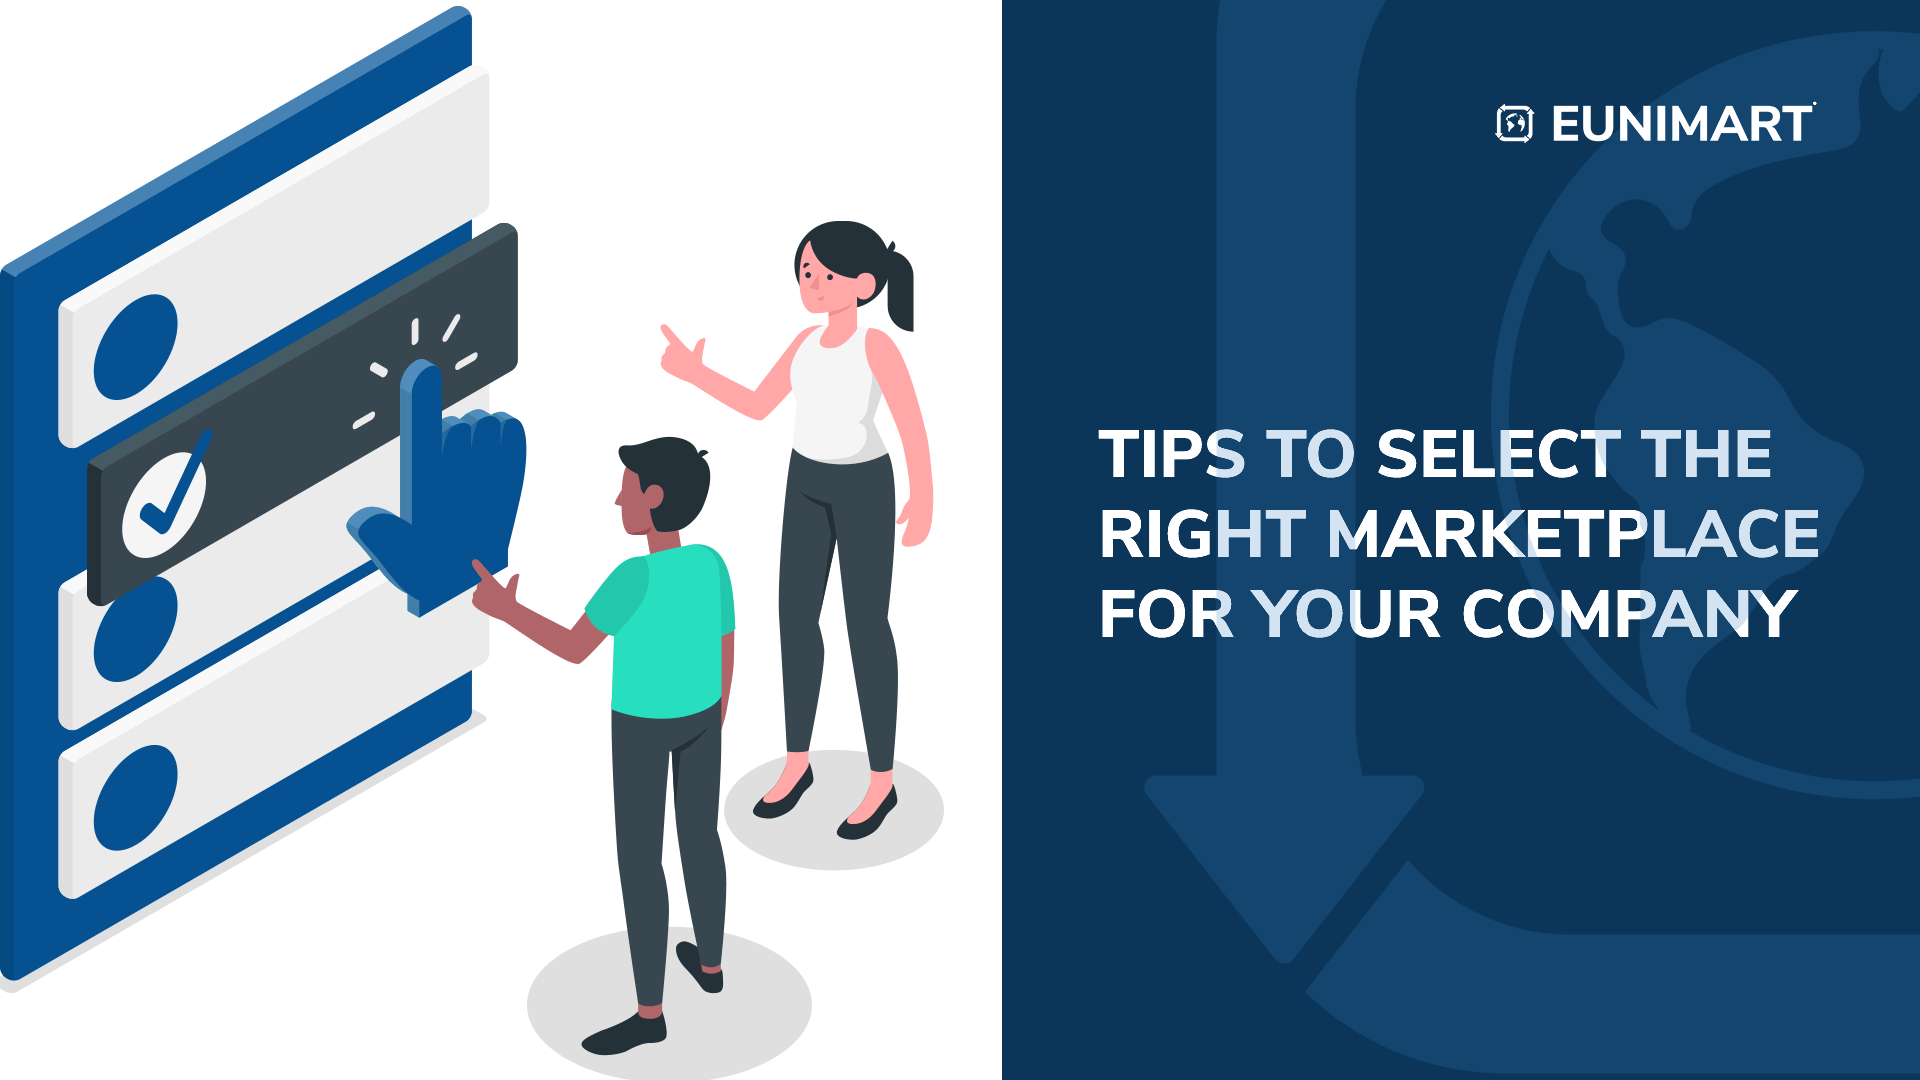 How to select the right marketplace for your company